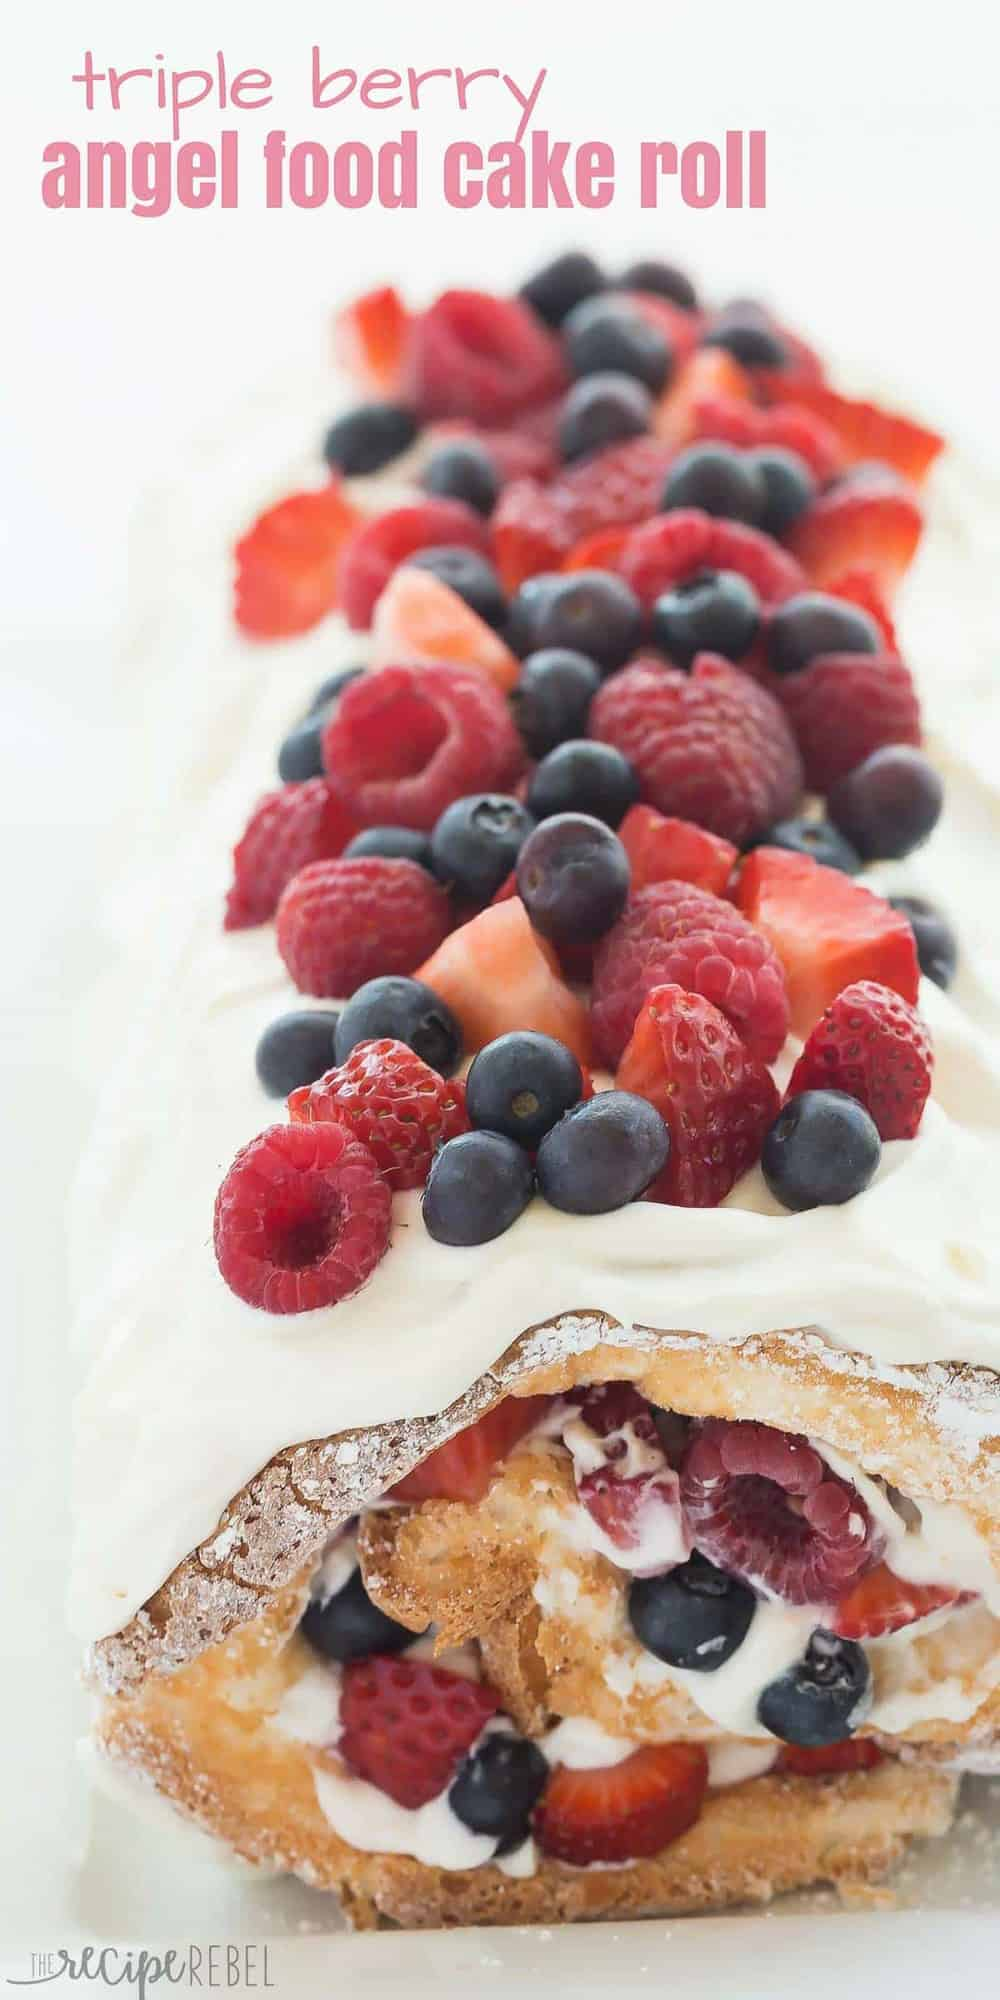 This Triple Berry Angel Food Cake Roll is an easy red, white and blue dessert (or just red and white!) for the 4th of July or Canada Day, or any day! Perfect with fresh summer strawberries, raspberries and blueberries :) Includes step by step recipe video. | 4th of july | july 4 | Canada Day | summer dessert | fresh fruit | easy dessert | cake mix